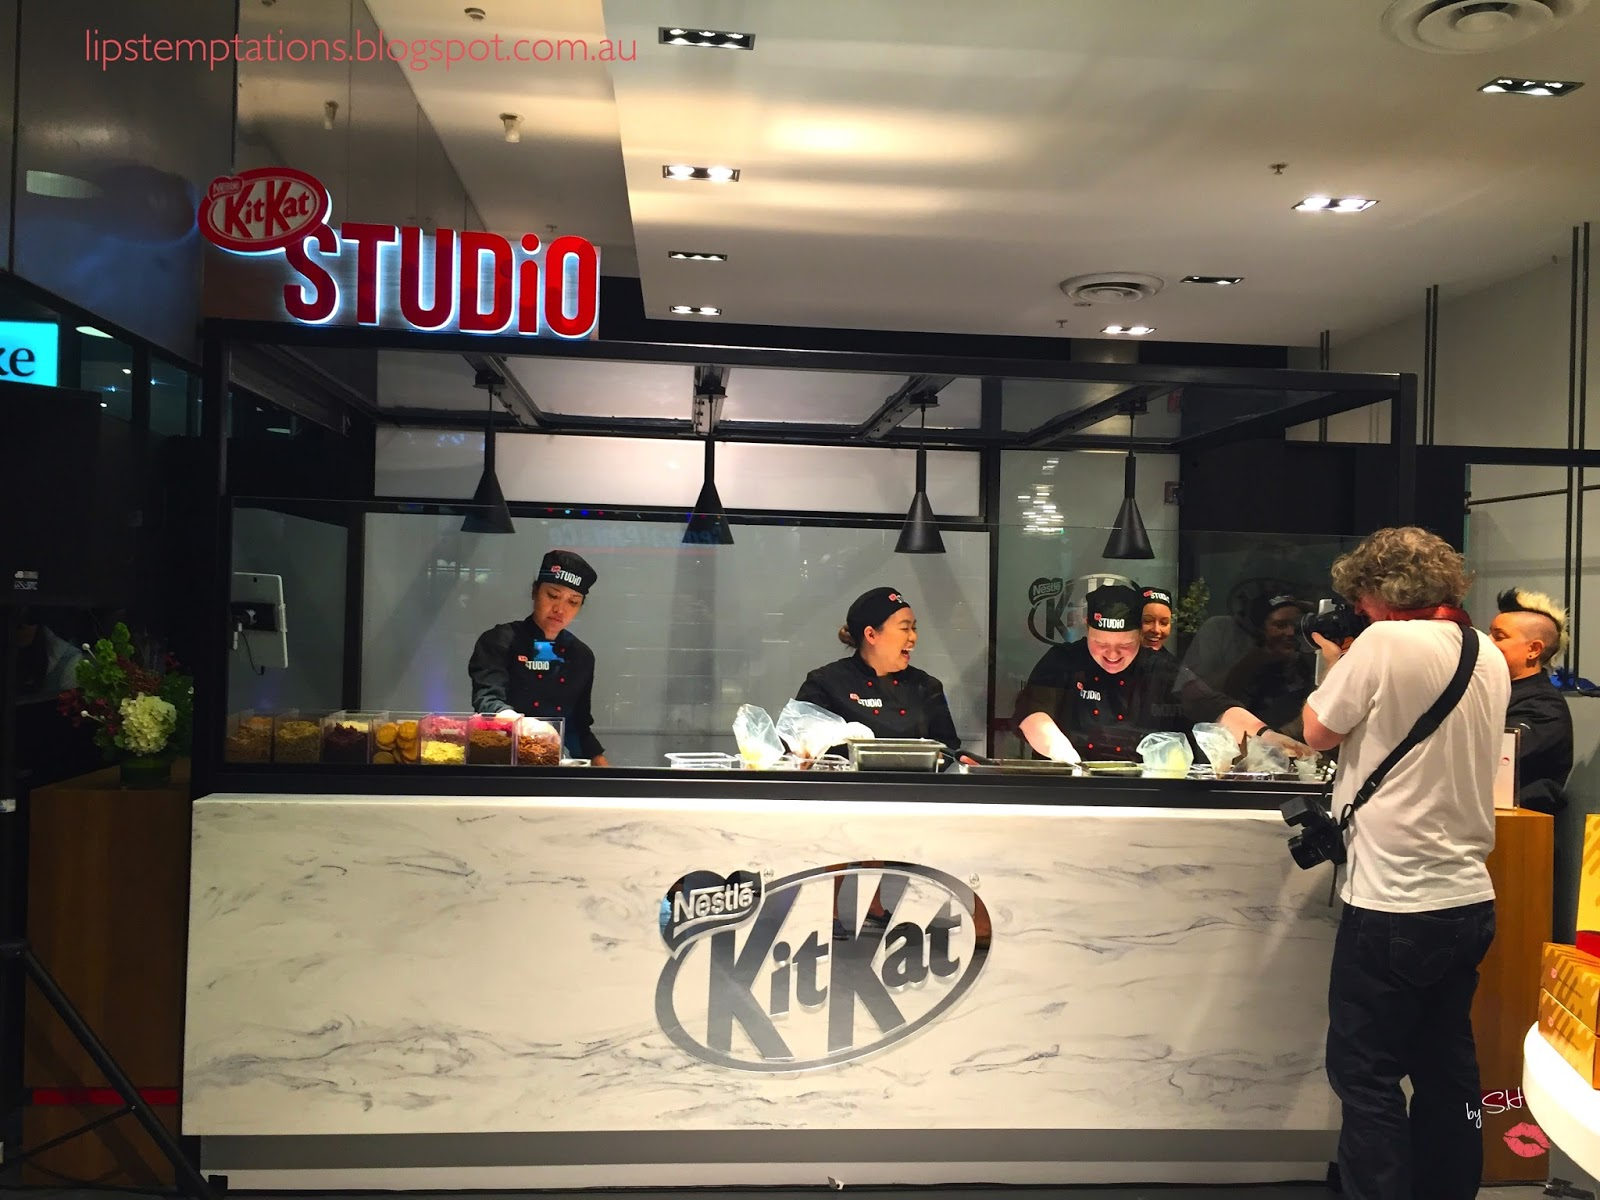 Kit kat studio pop up store lips temptations it was a huge success with over 25000 kit kat sold the good news is the melbourne version is bigger better and longer it will run for 8 weeks until the voltagebd Gallery